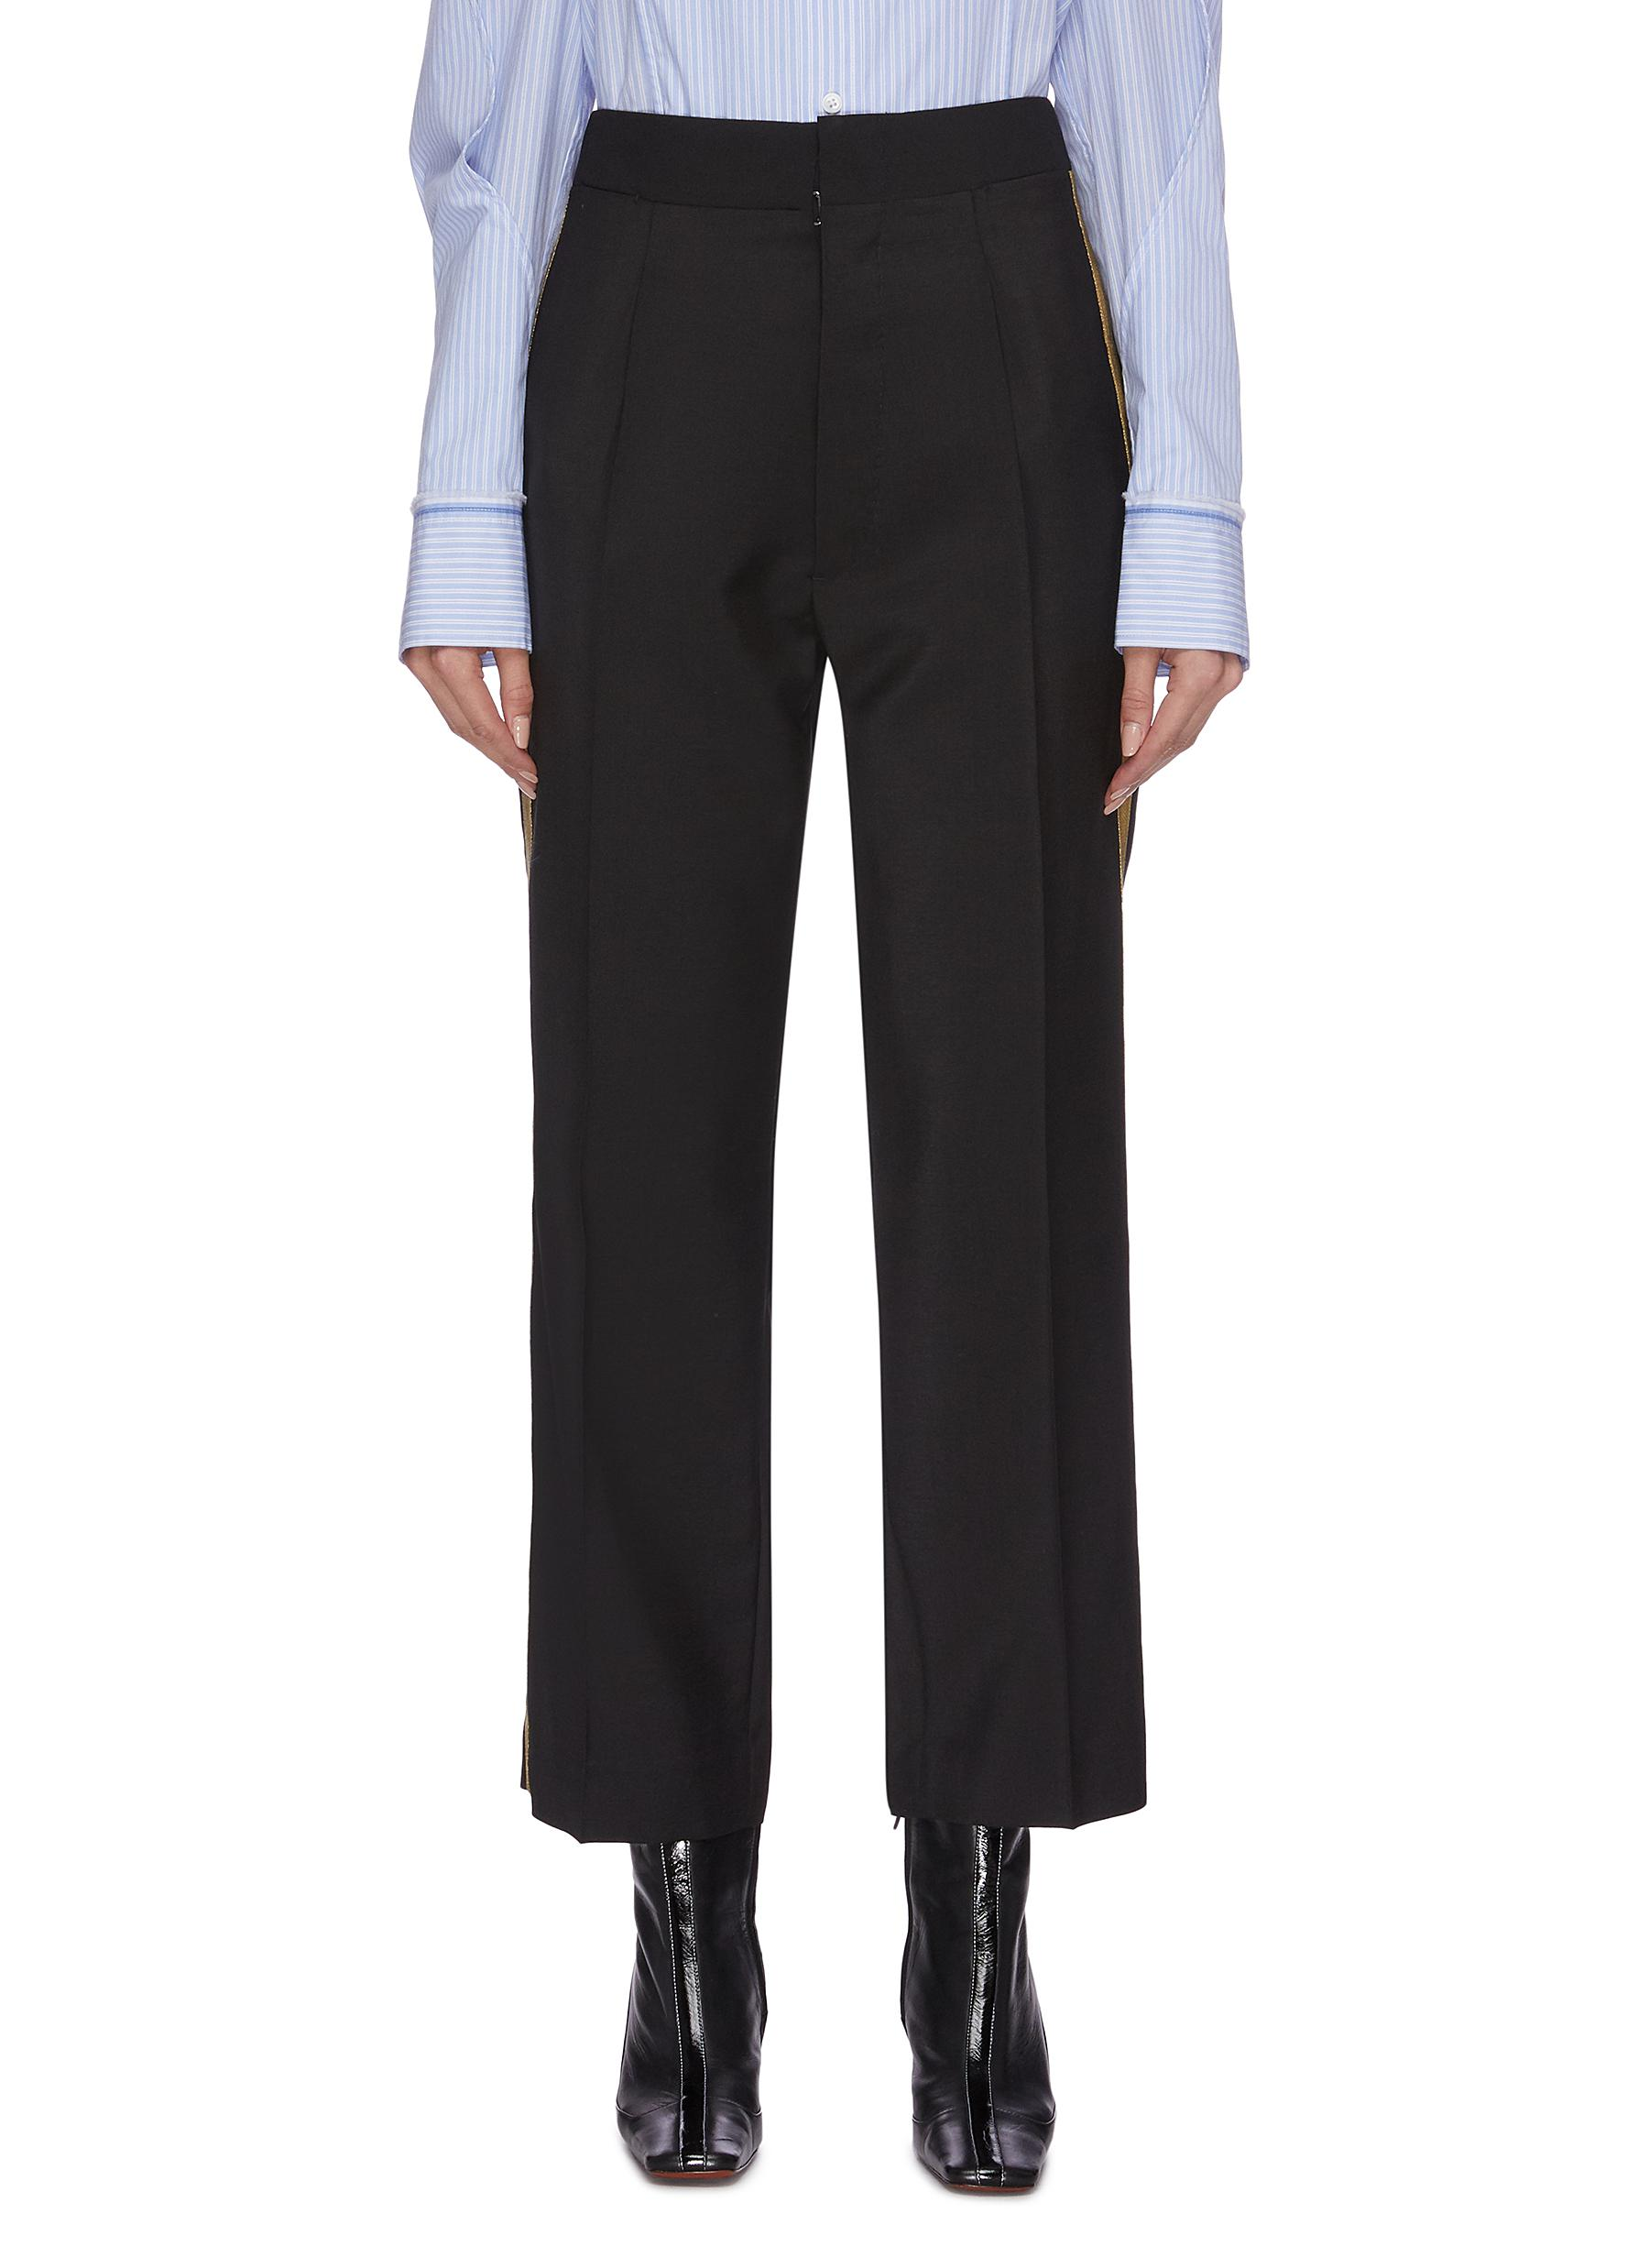 Contrast outseam pleated suiting pants by Maison Margiela